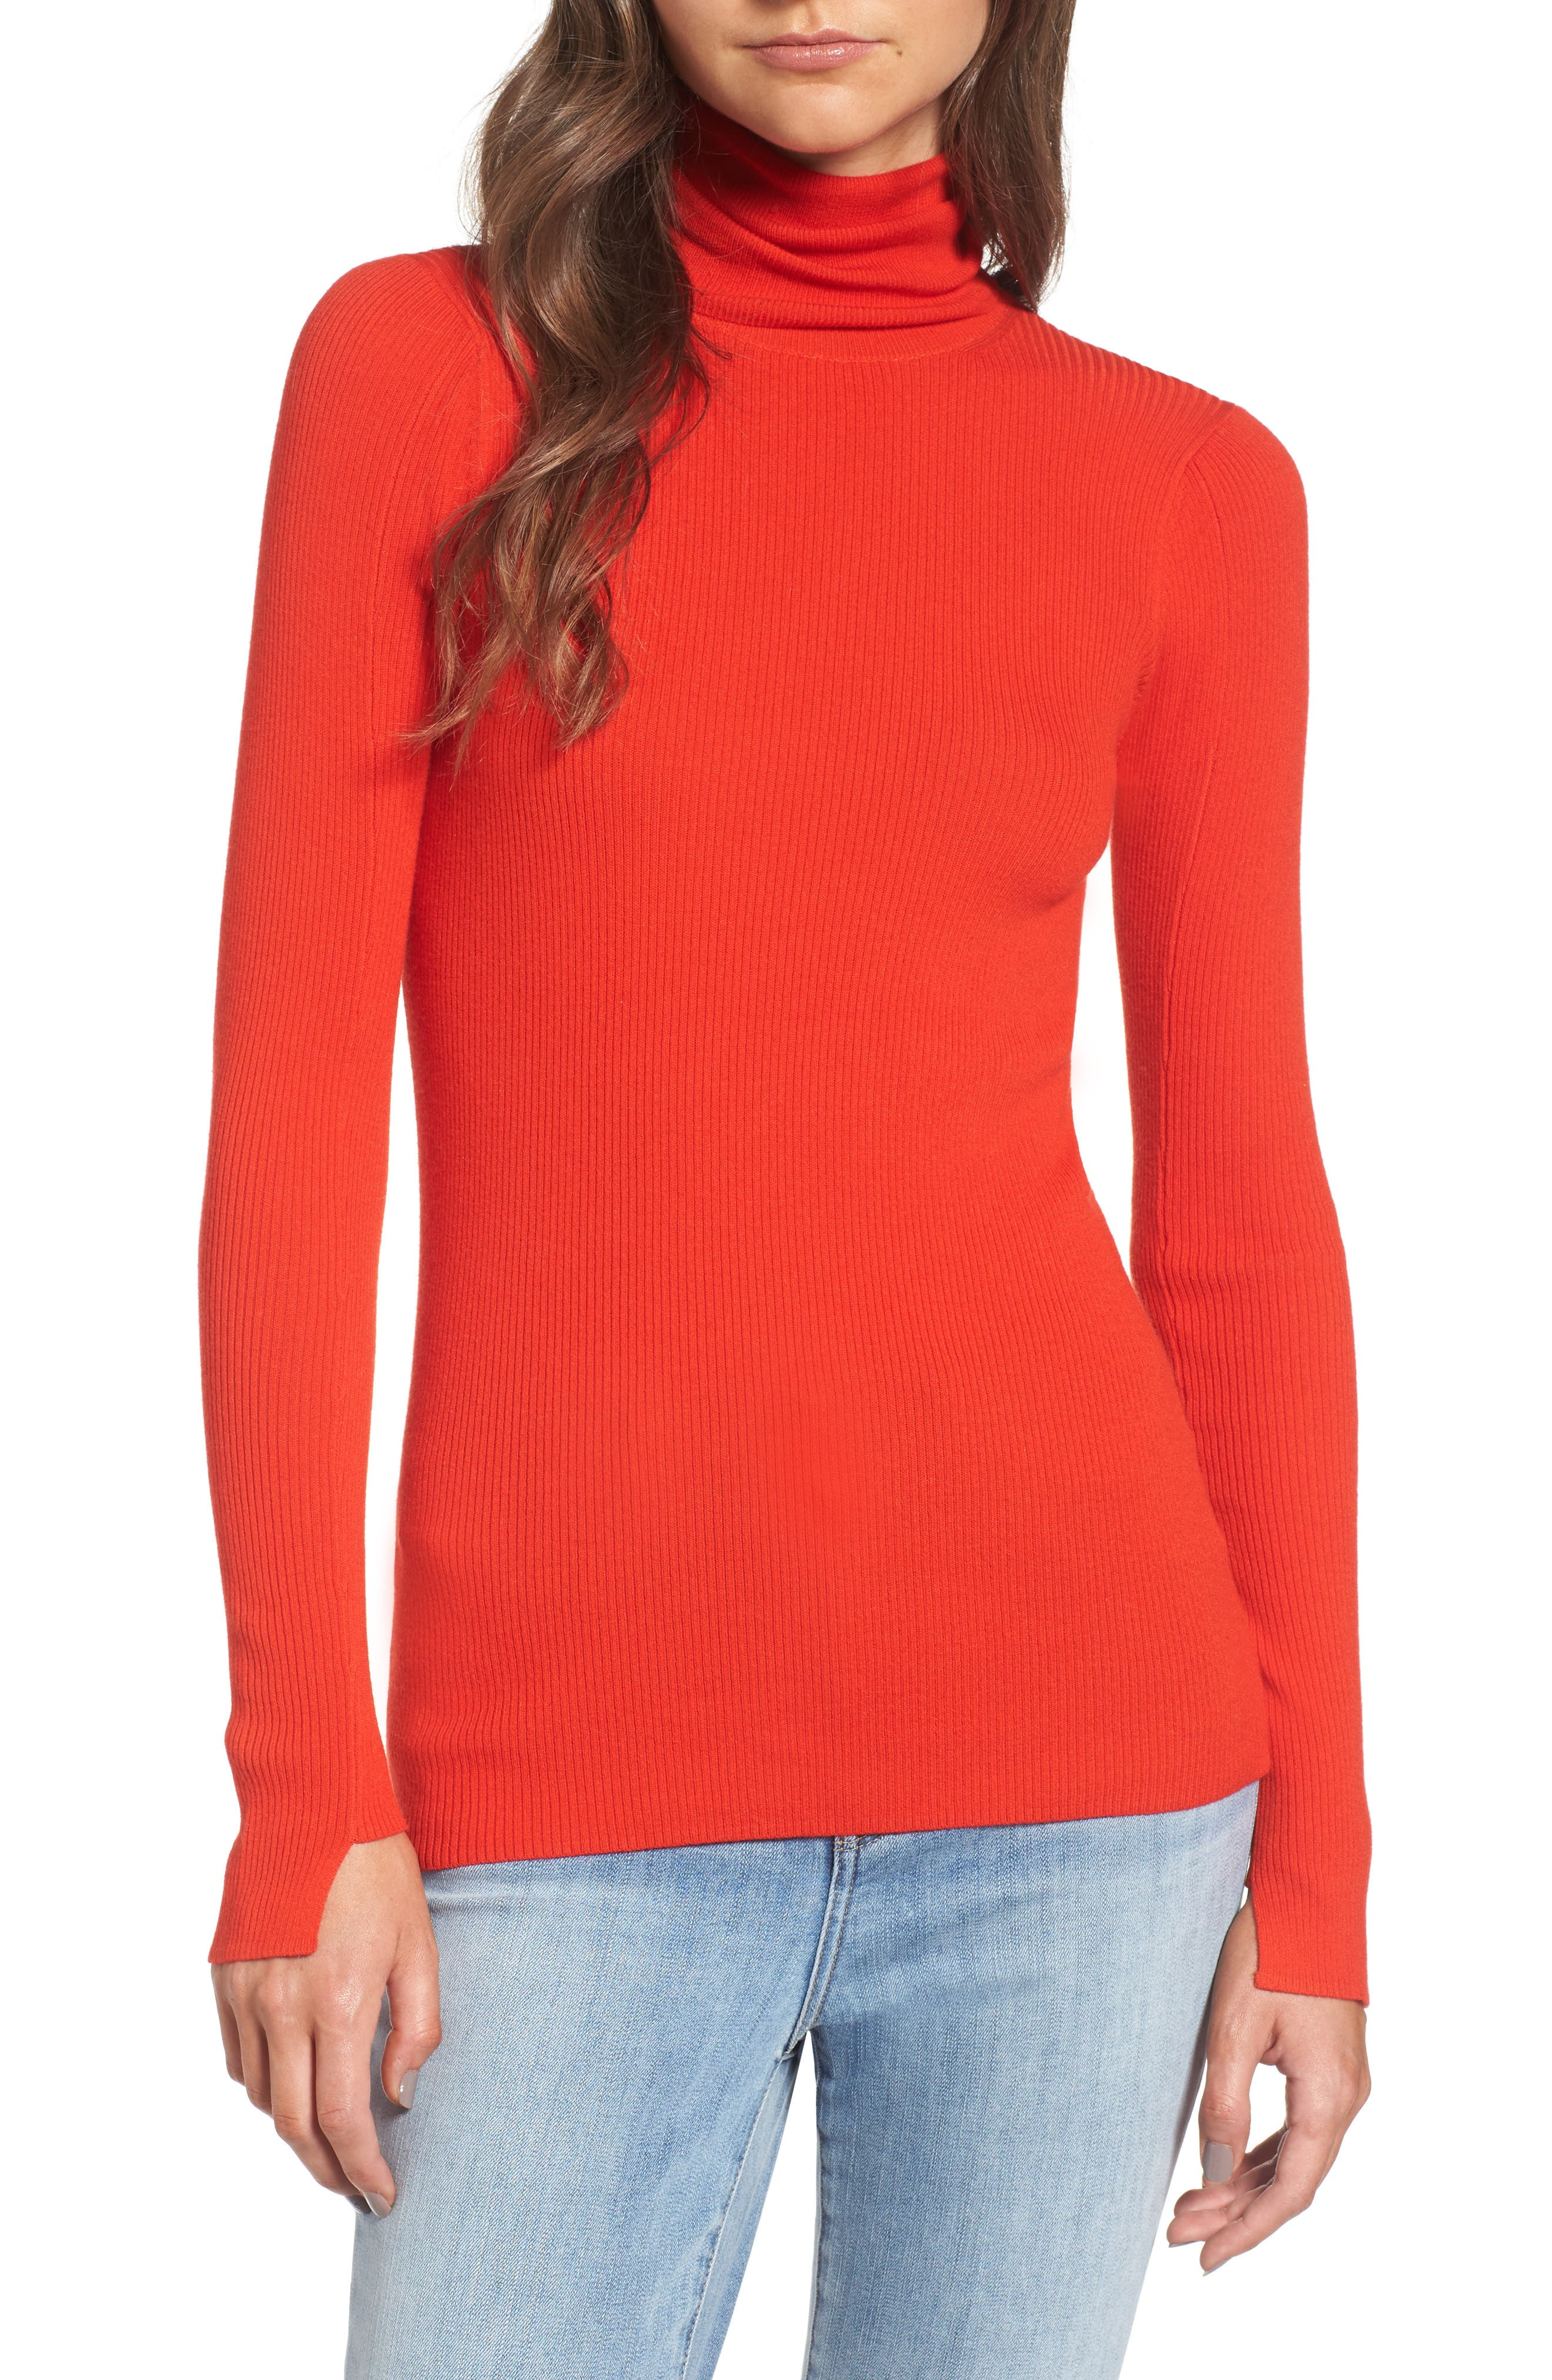 Women's Red Turtleneck Sweaters | Nordstrom